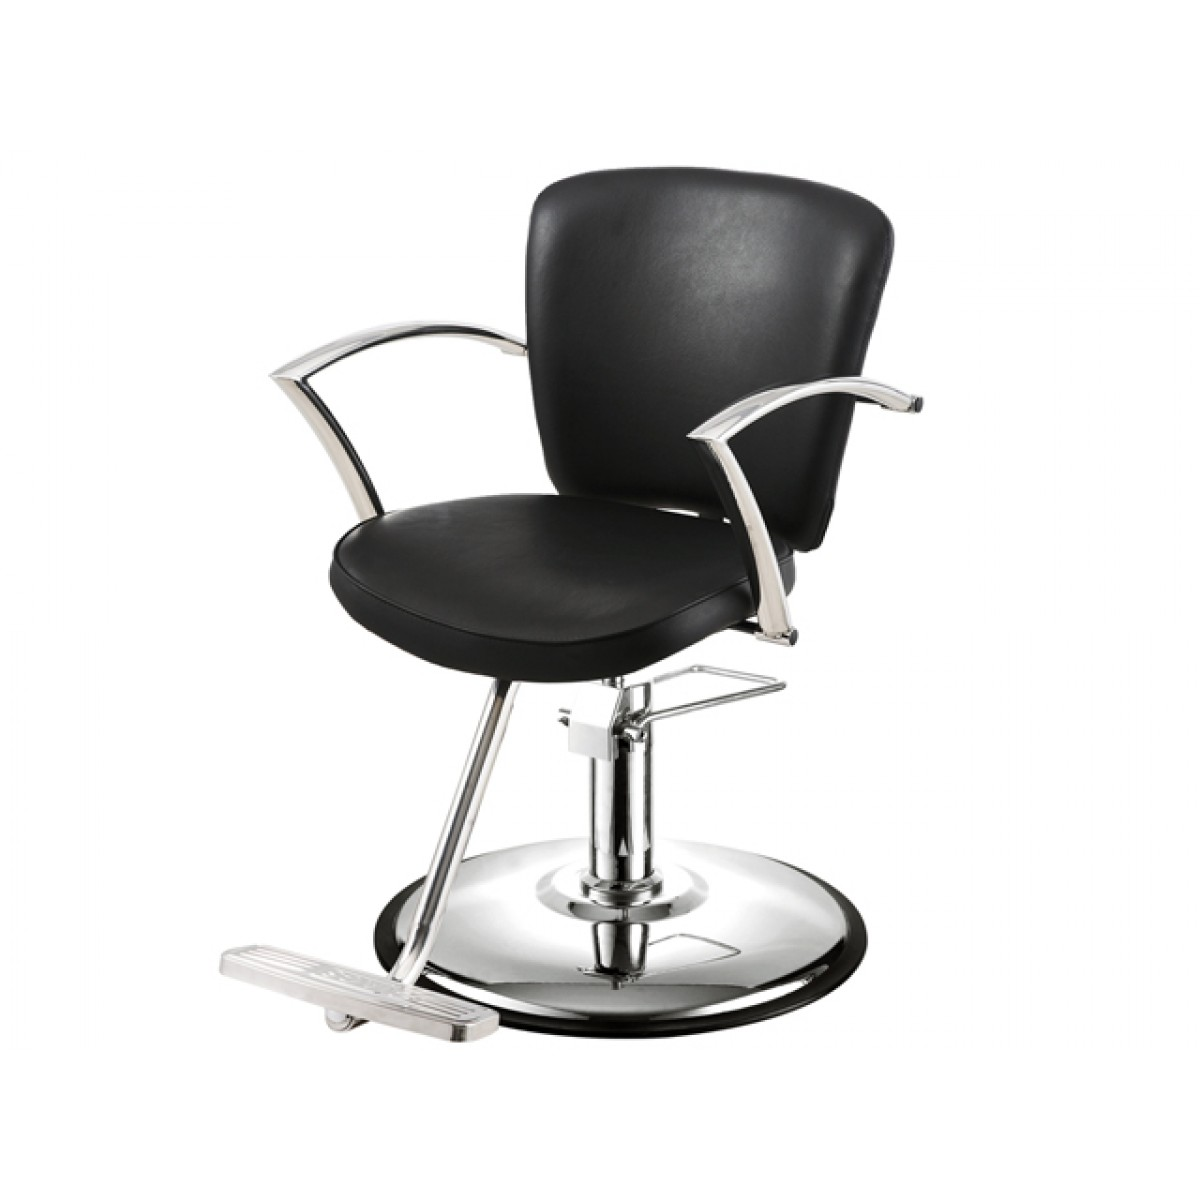 Beauty Salon Chair Ags Beauty Salon Equipment Salon Furniture Chairs Wholesale In Nyc